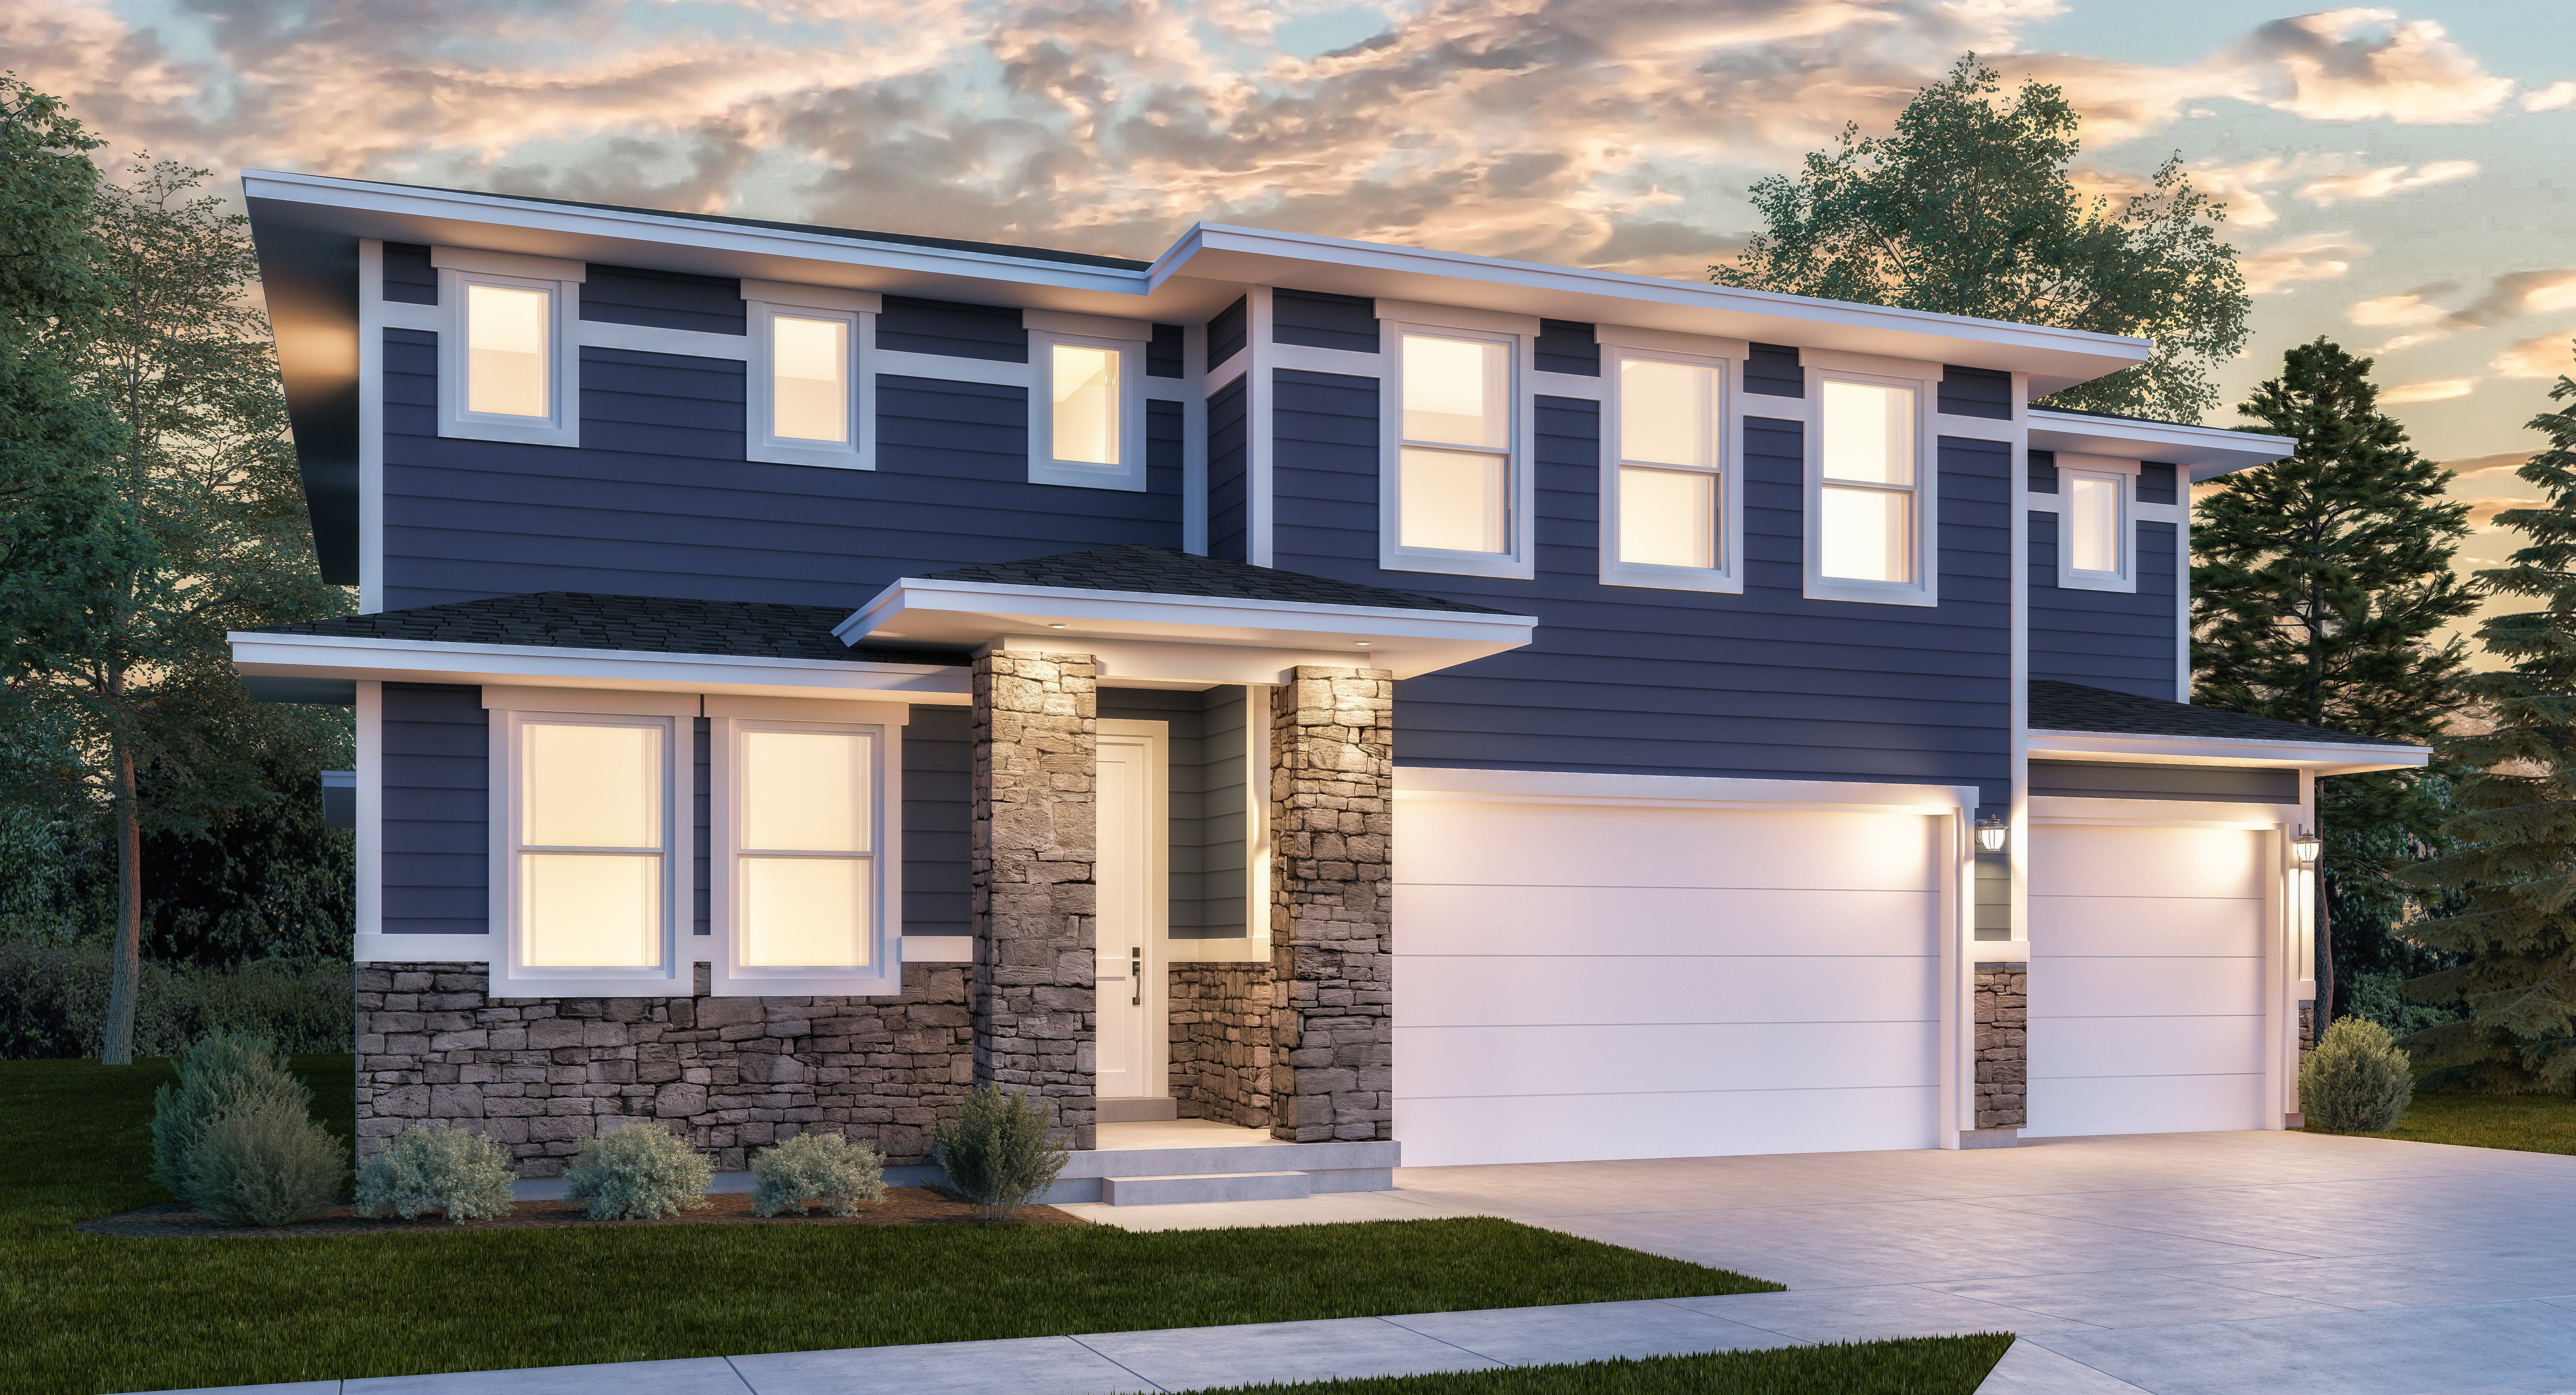 New Construction Homes Plans In Salt Lake County Ut 1 668 Homes Newhomesource